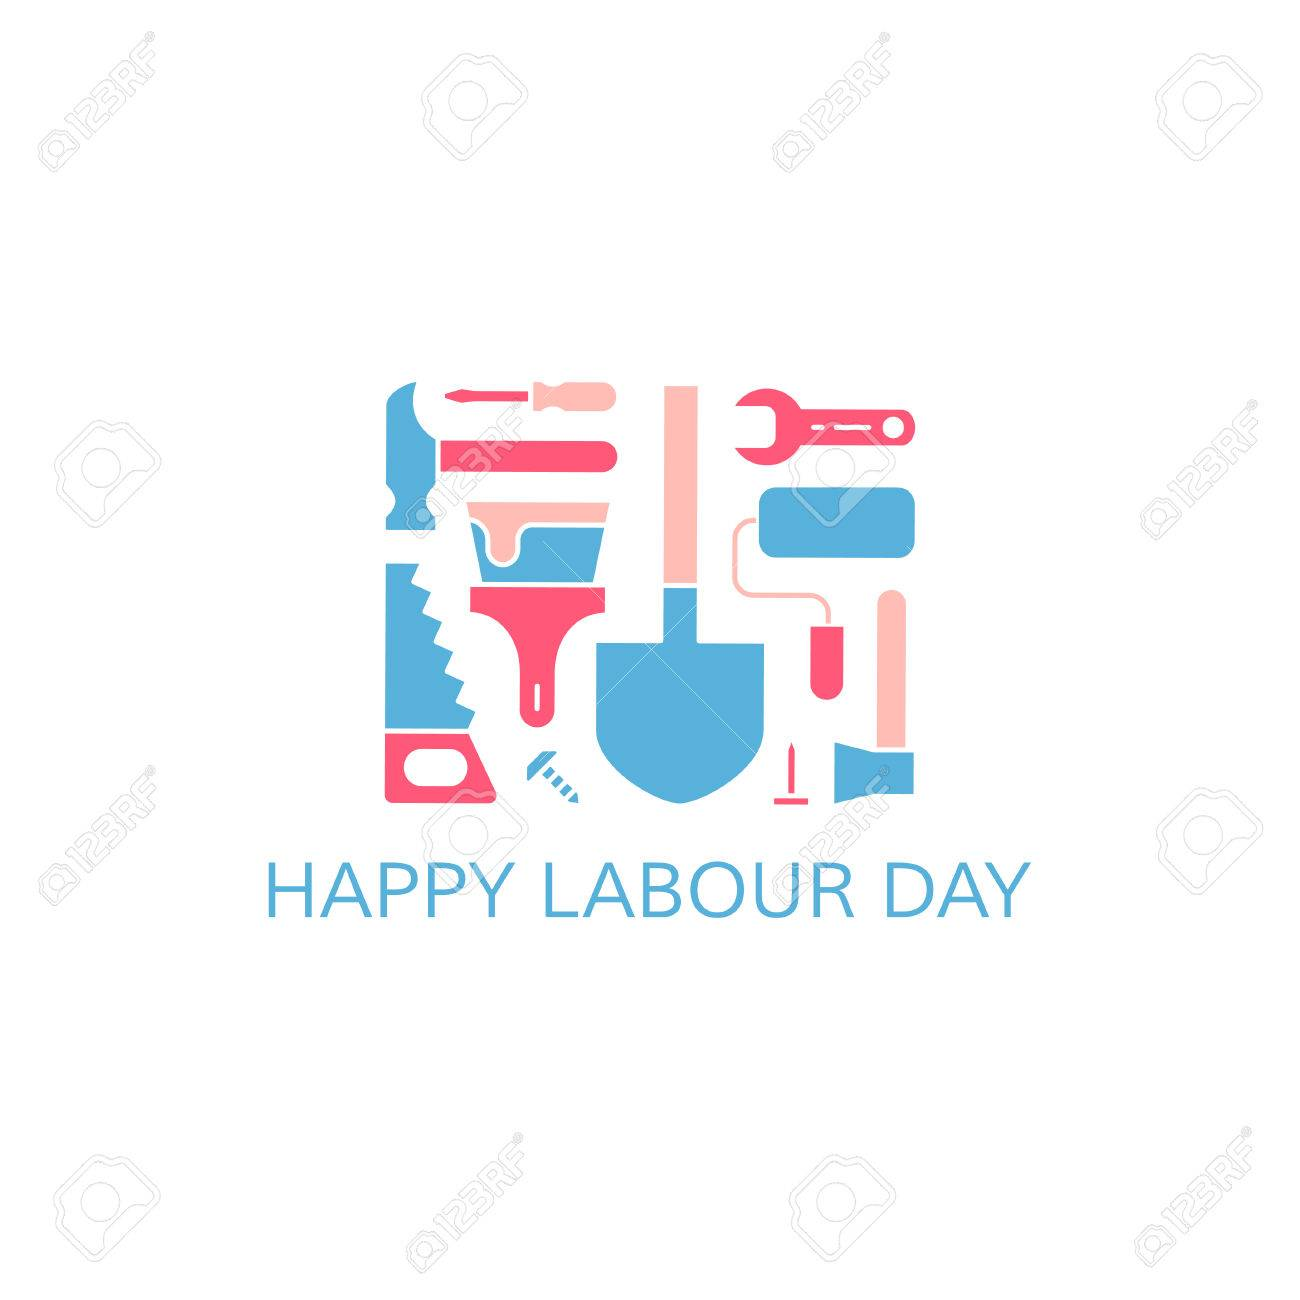 Happy labour day greeting card labour day concept working tools happy labour day greeting card labour day concept working tools on white background m4hsunfo